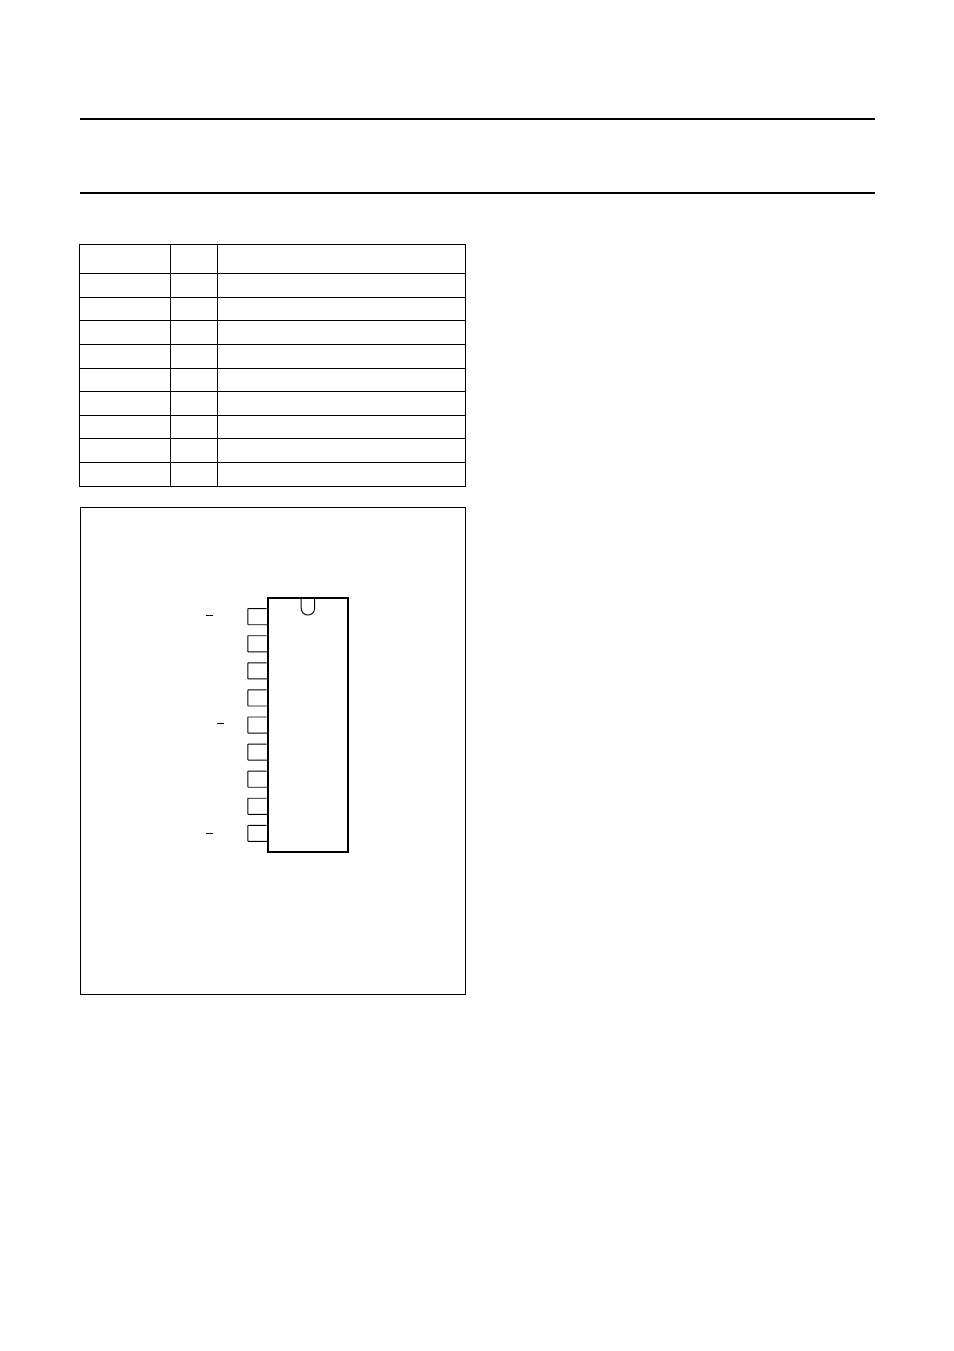 Pinning Functional Description Philips Tda2615 User Manual Page 12 Volt Symmetric Power Supply Circuit 4